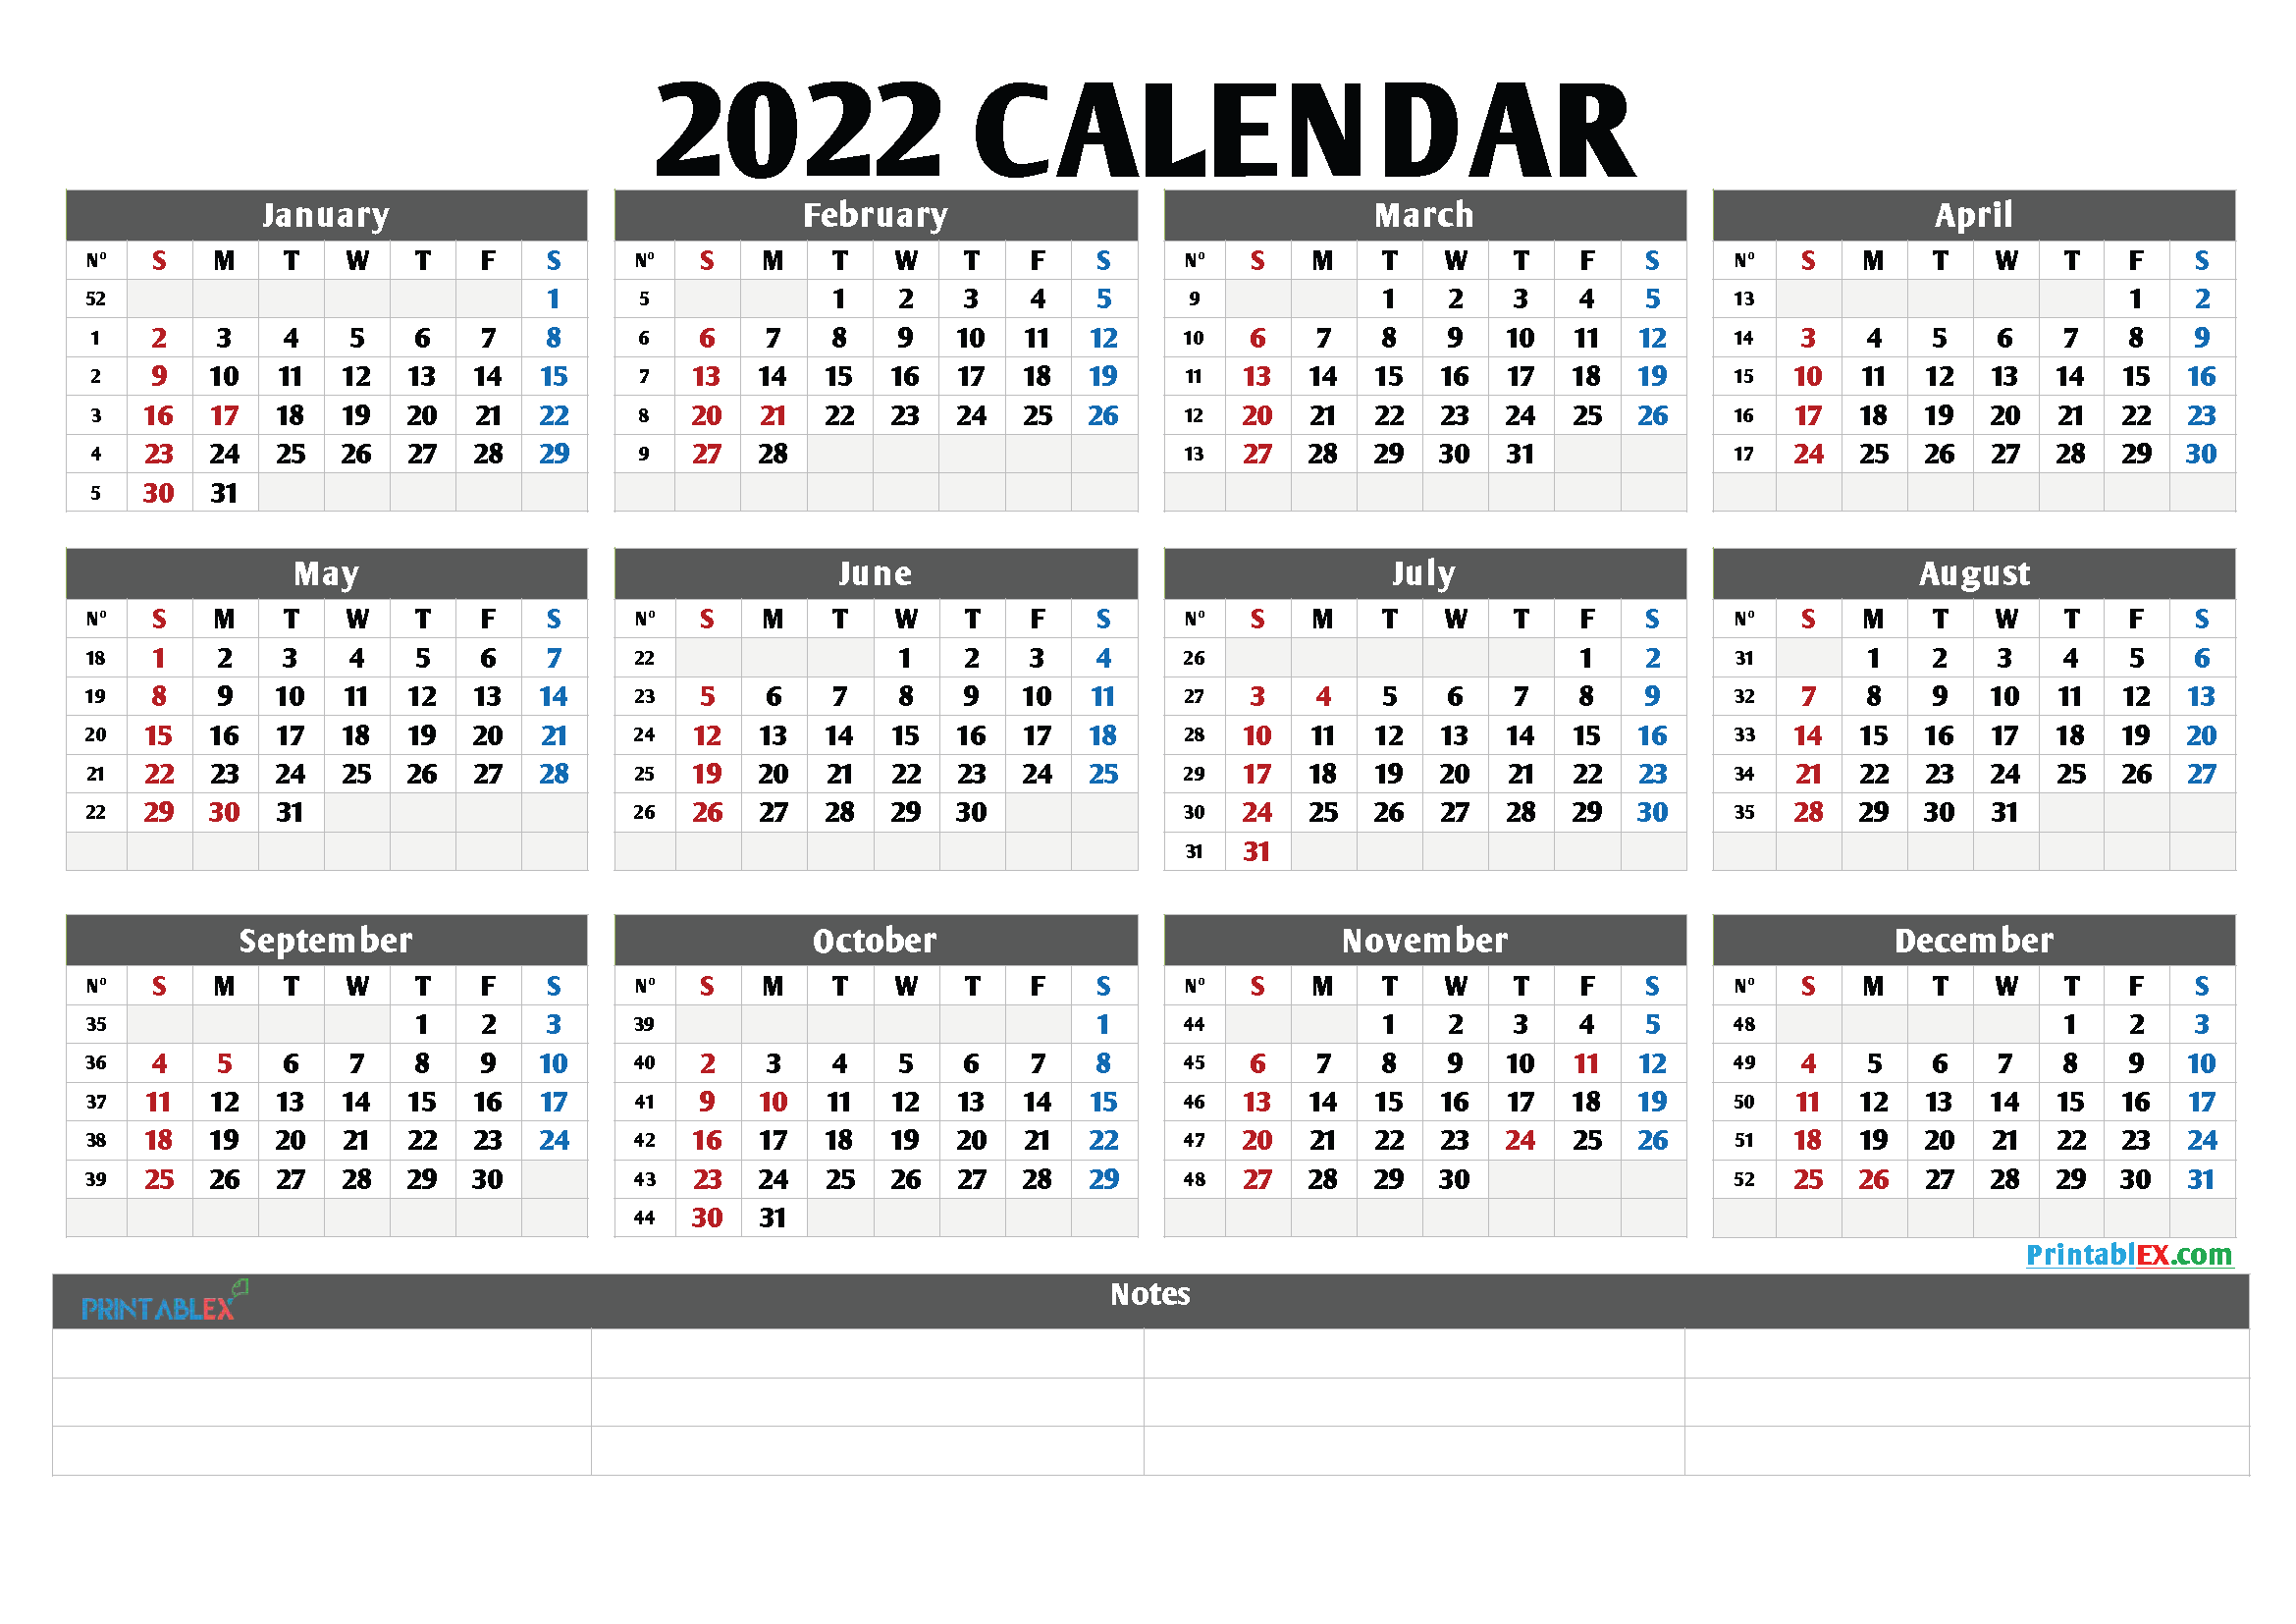 Printable 2022 Yearly Calendar with Week Numbers (Font: freem)